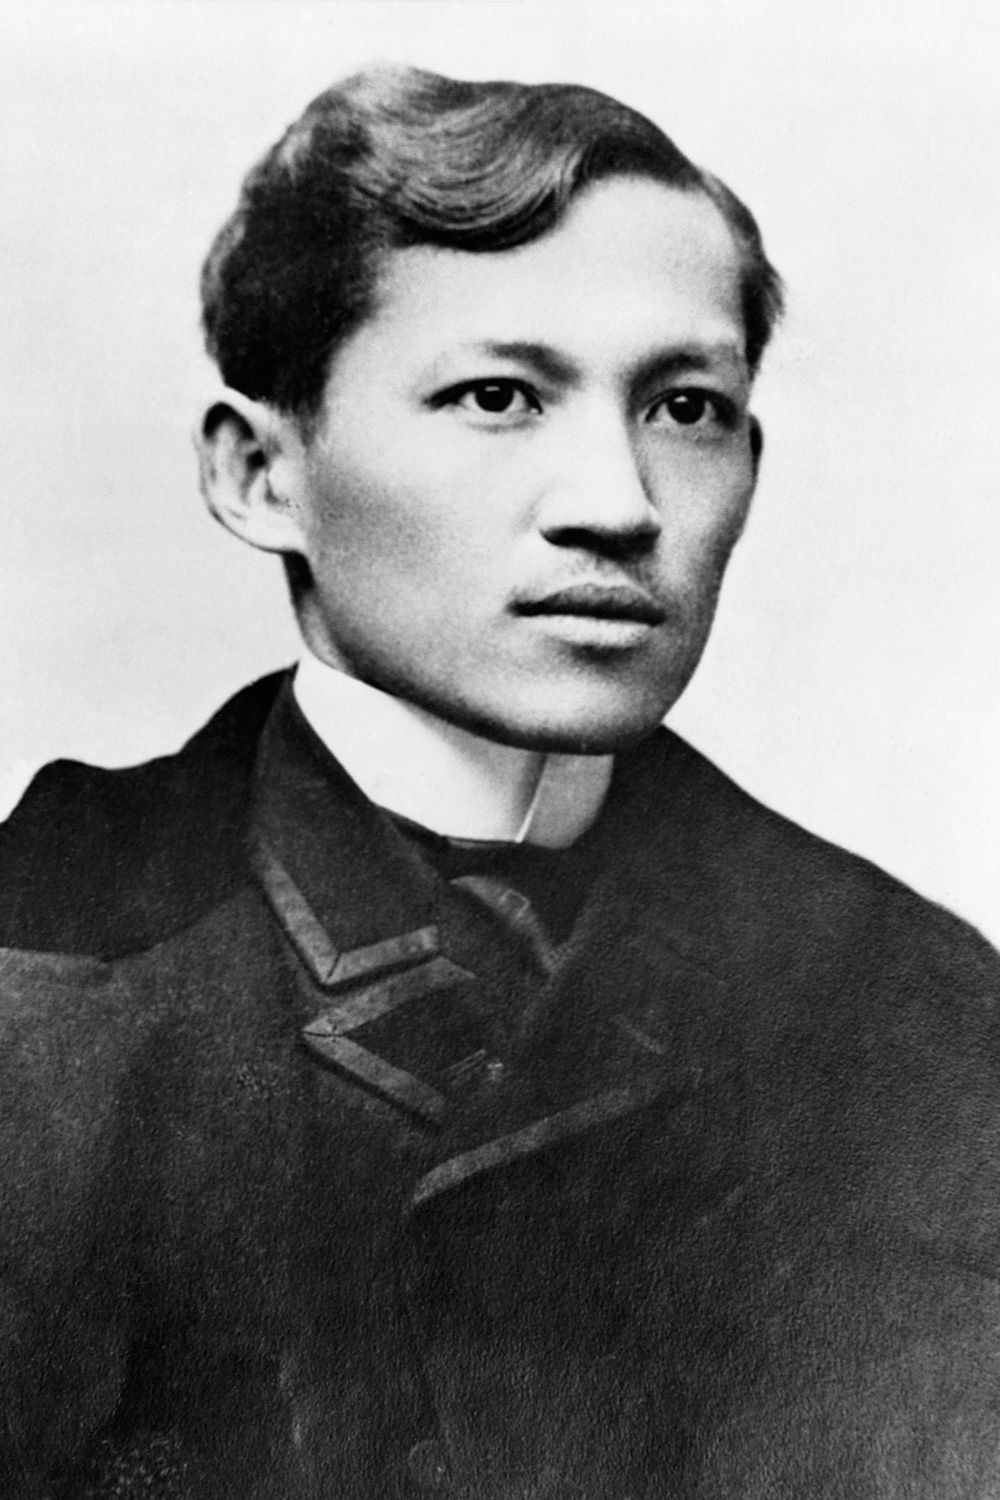 dr jose rizal the fountainhead and Francisco sionil jose - philippines essay example he dr jose rizal: the fountainhead and living source of filipino nationalism jose rizal my home by jose rizal jose rizal as asian hero recent posts: ra.